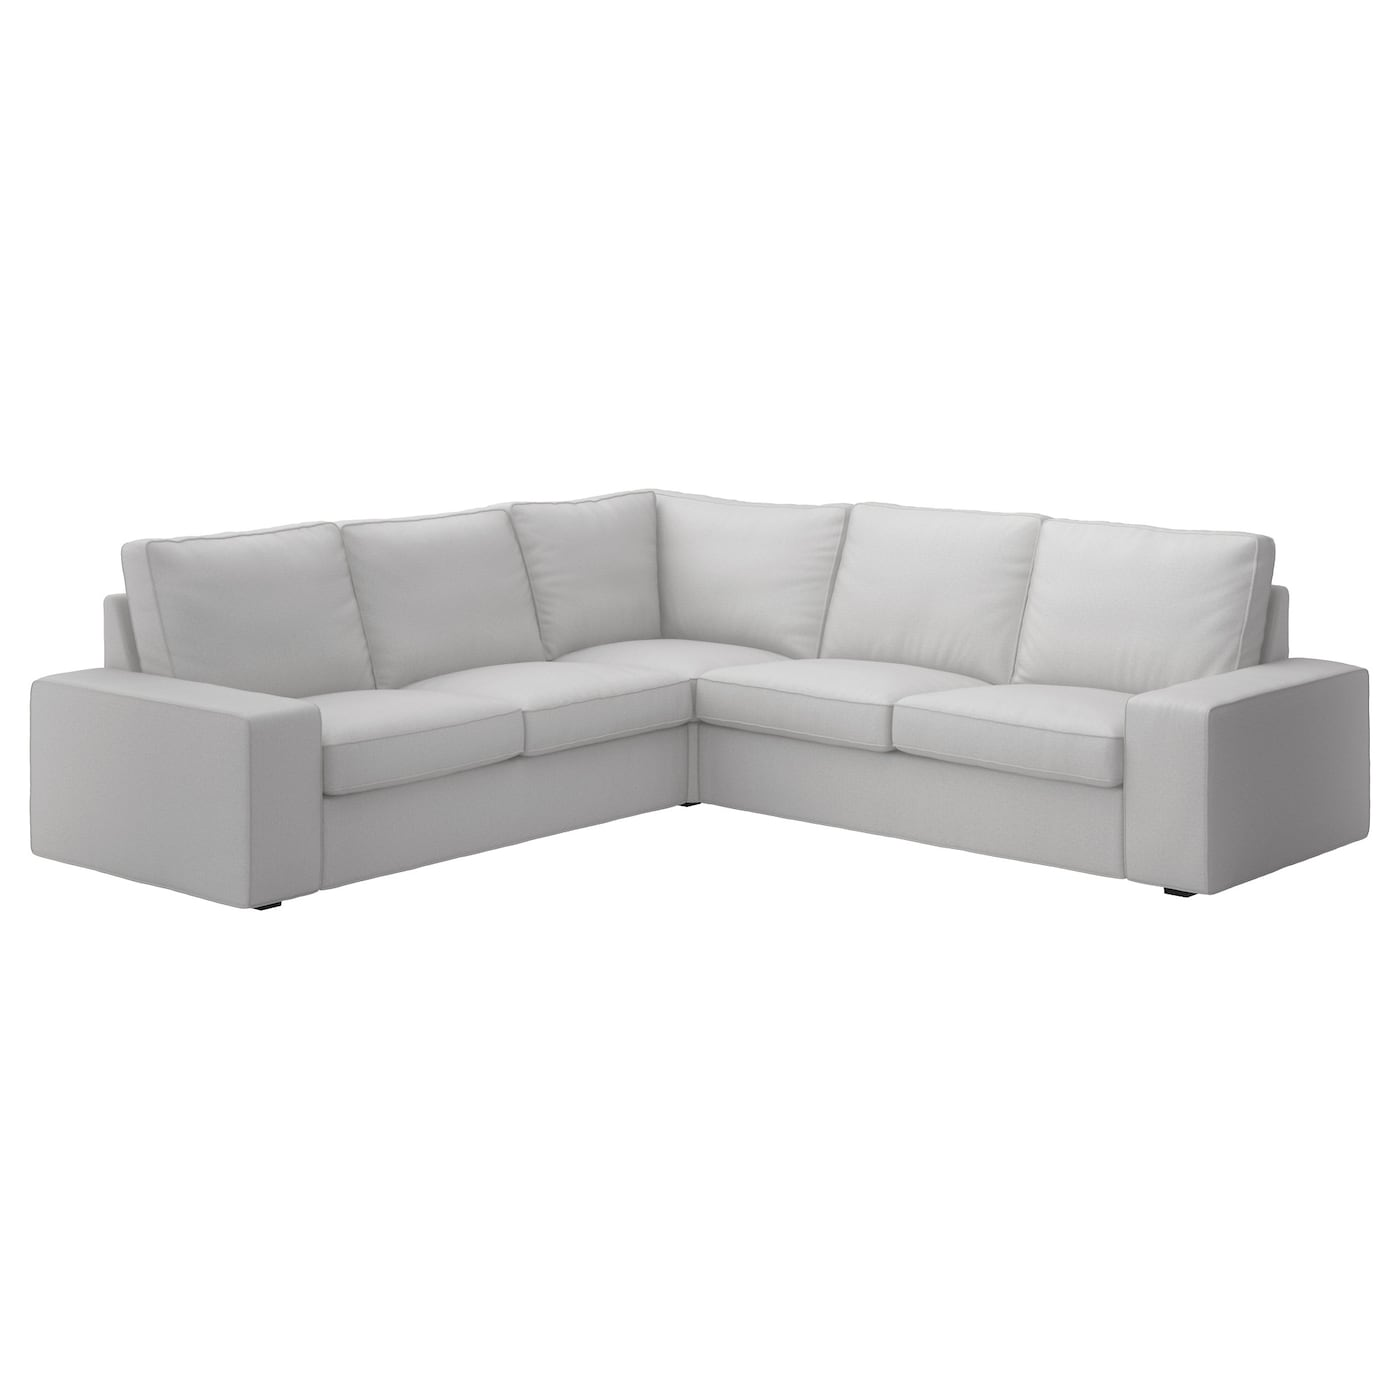 Free try out of Cor Jalis 02 Sofa from Cor in 3D, VR and AR